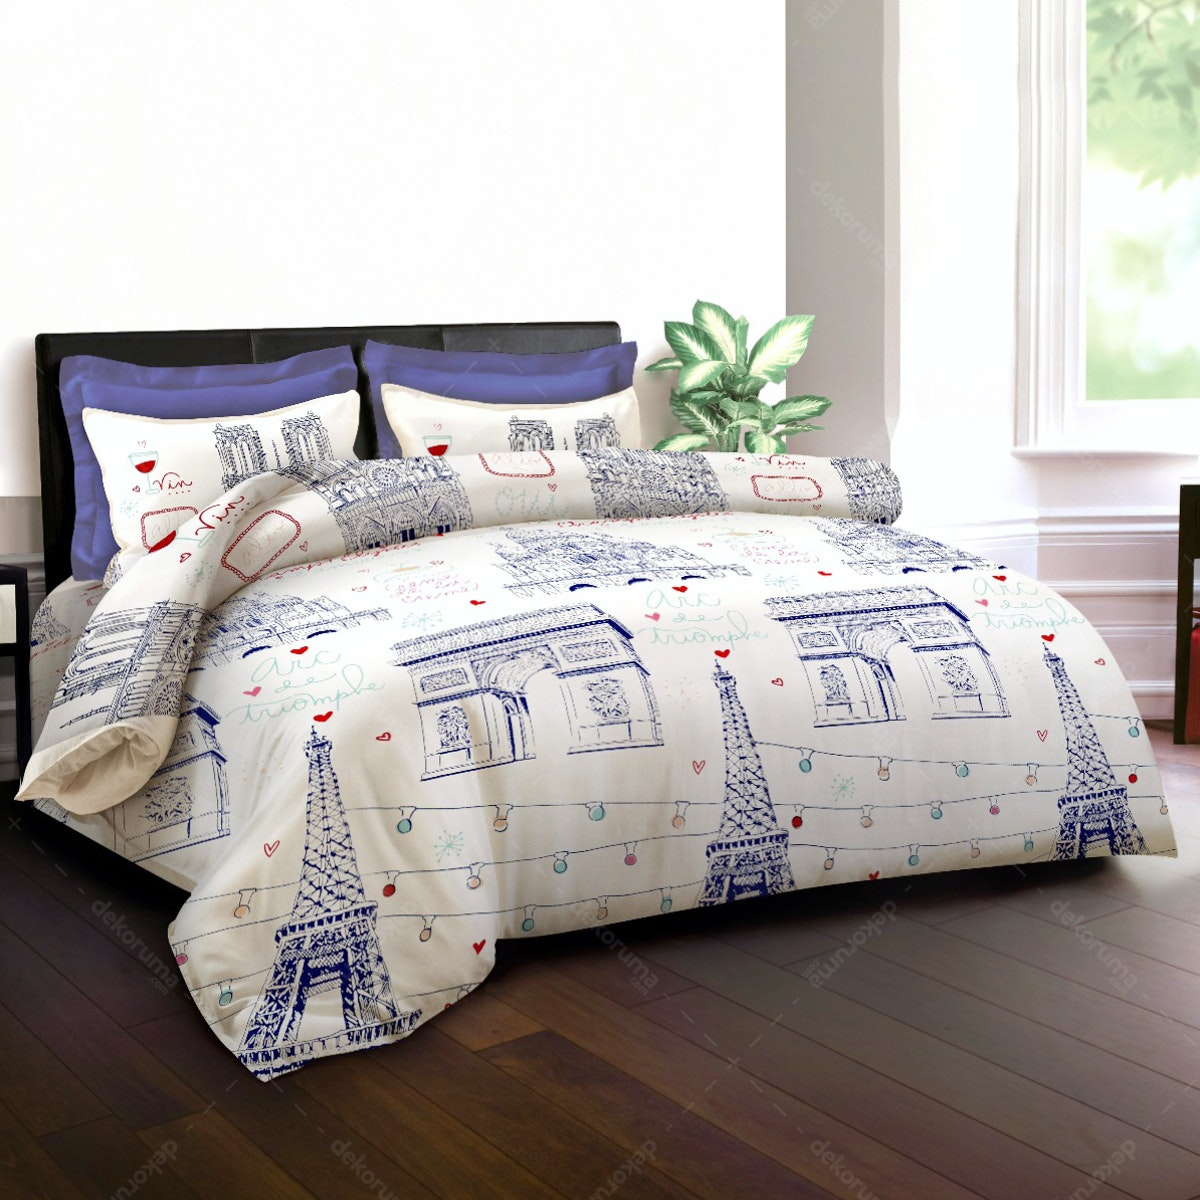 King Rabbit Bed Cover Bonjour 140x230cm